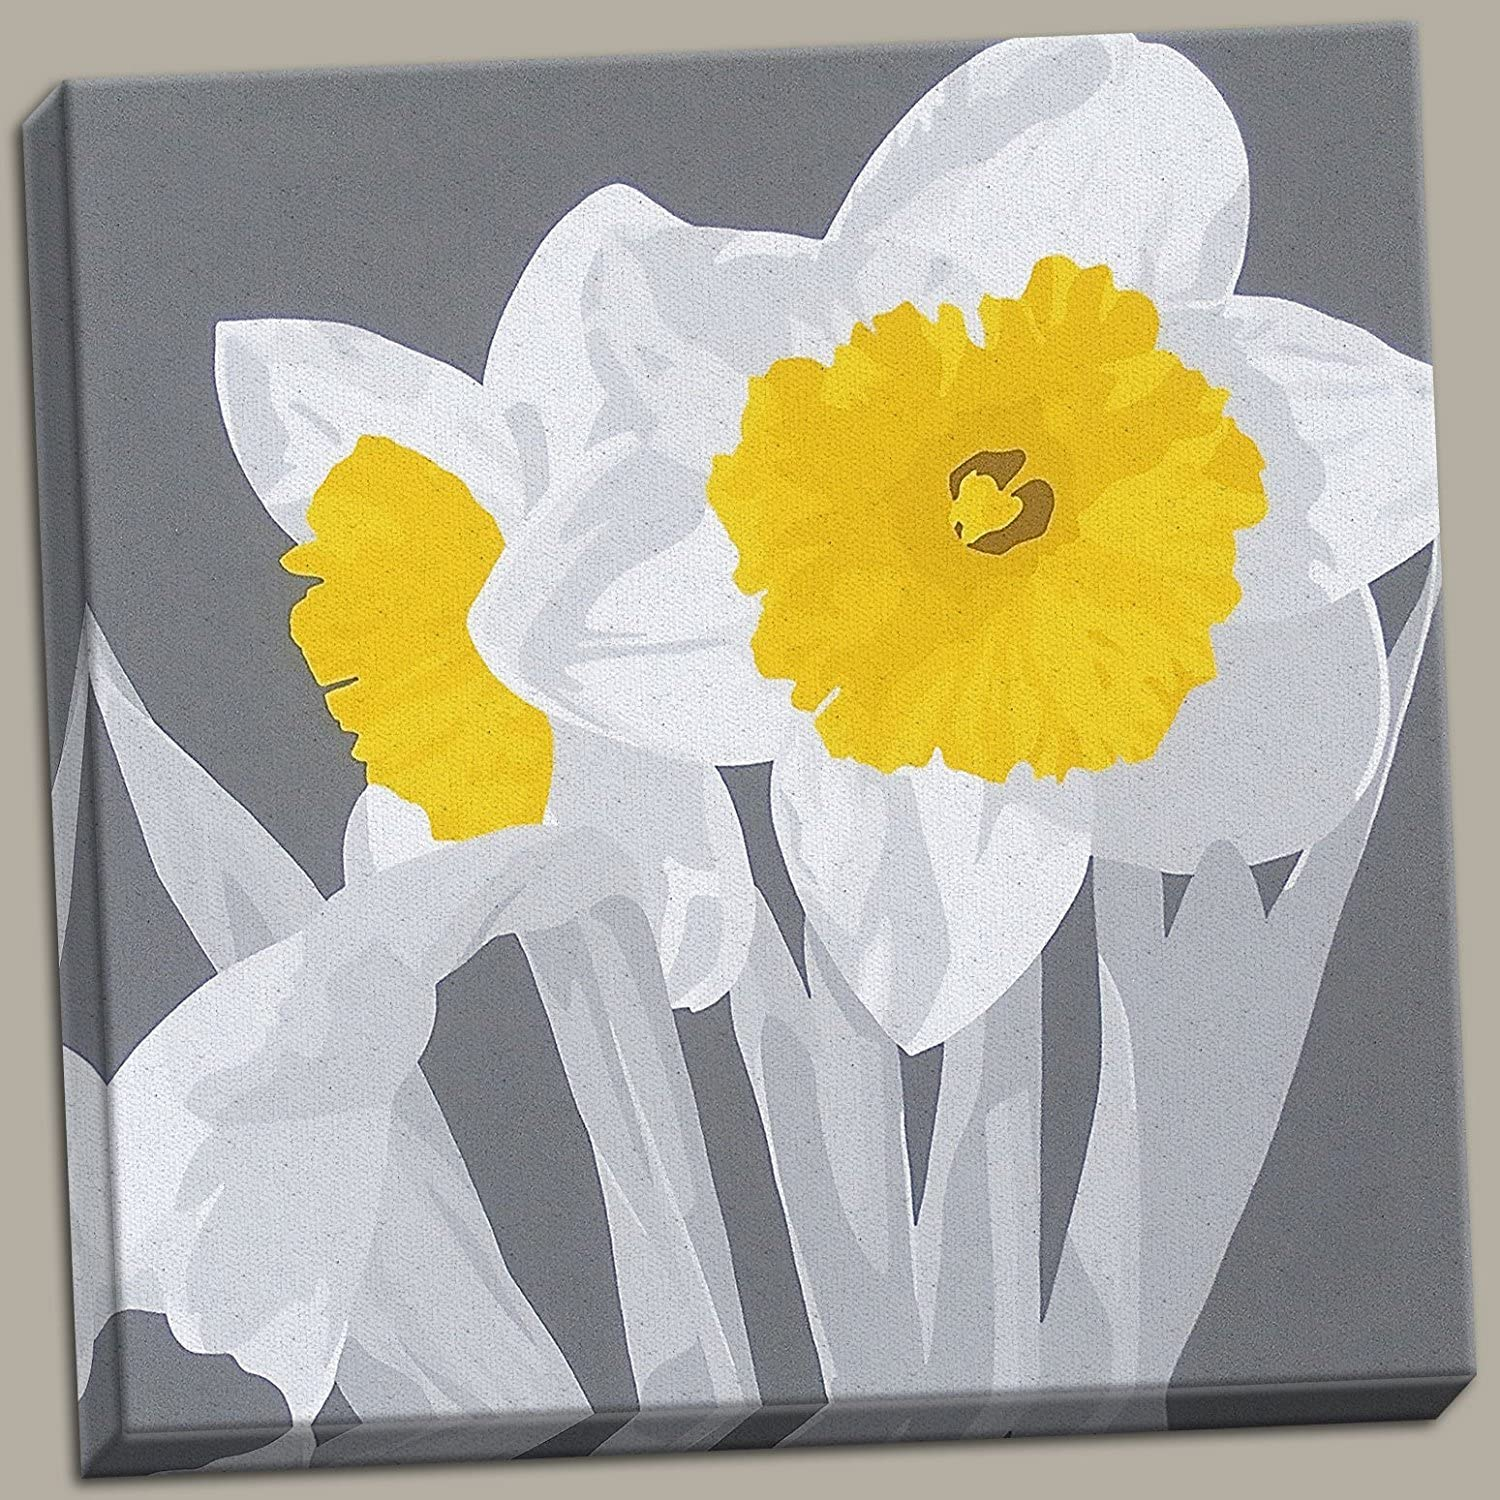 Gango Home Décor Beautiful Gray and Yellow Daffodil Floral Canvas; One 36x36in Hand-Stretched Canvas